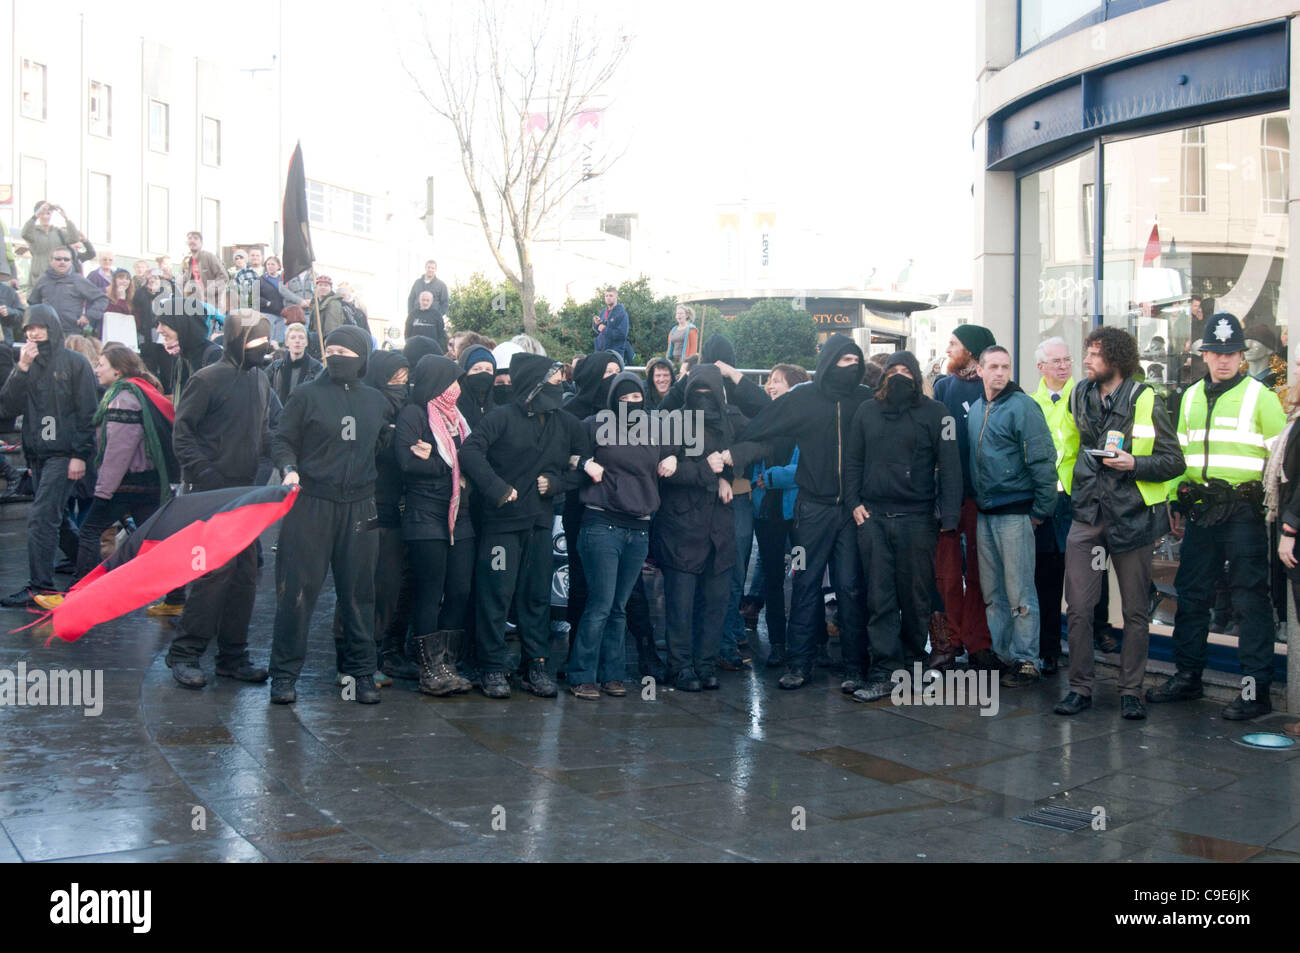 Brighton, UK. 30th Nov, 2011. Anarchists veer off from the agreed route during the public sector strike march in - Stock Image